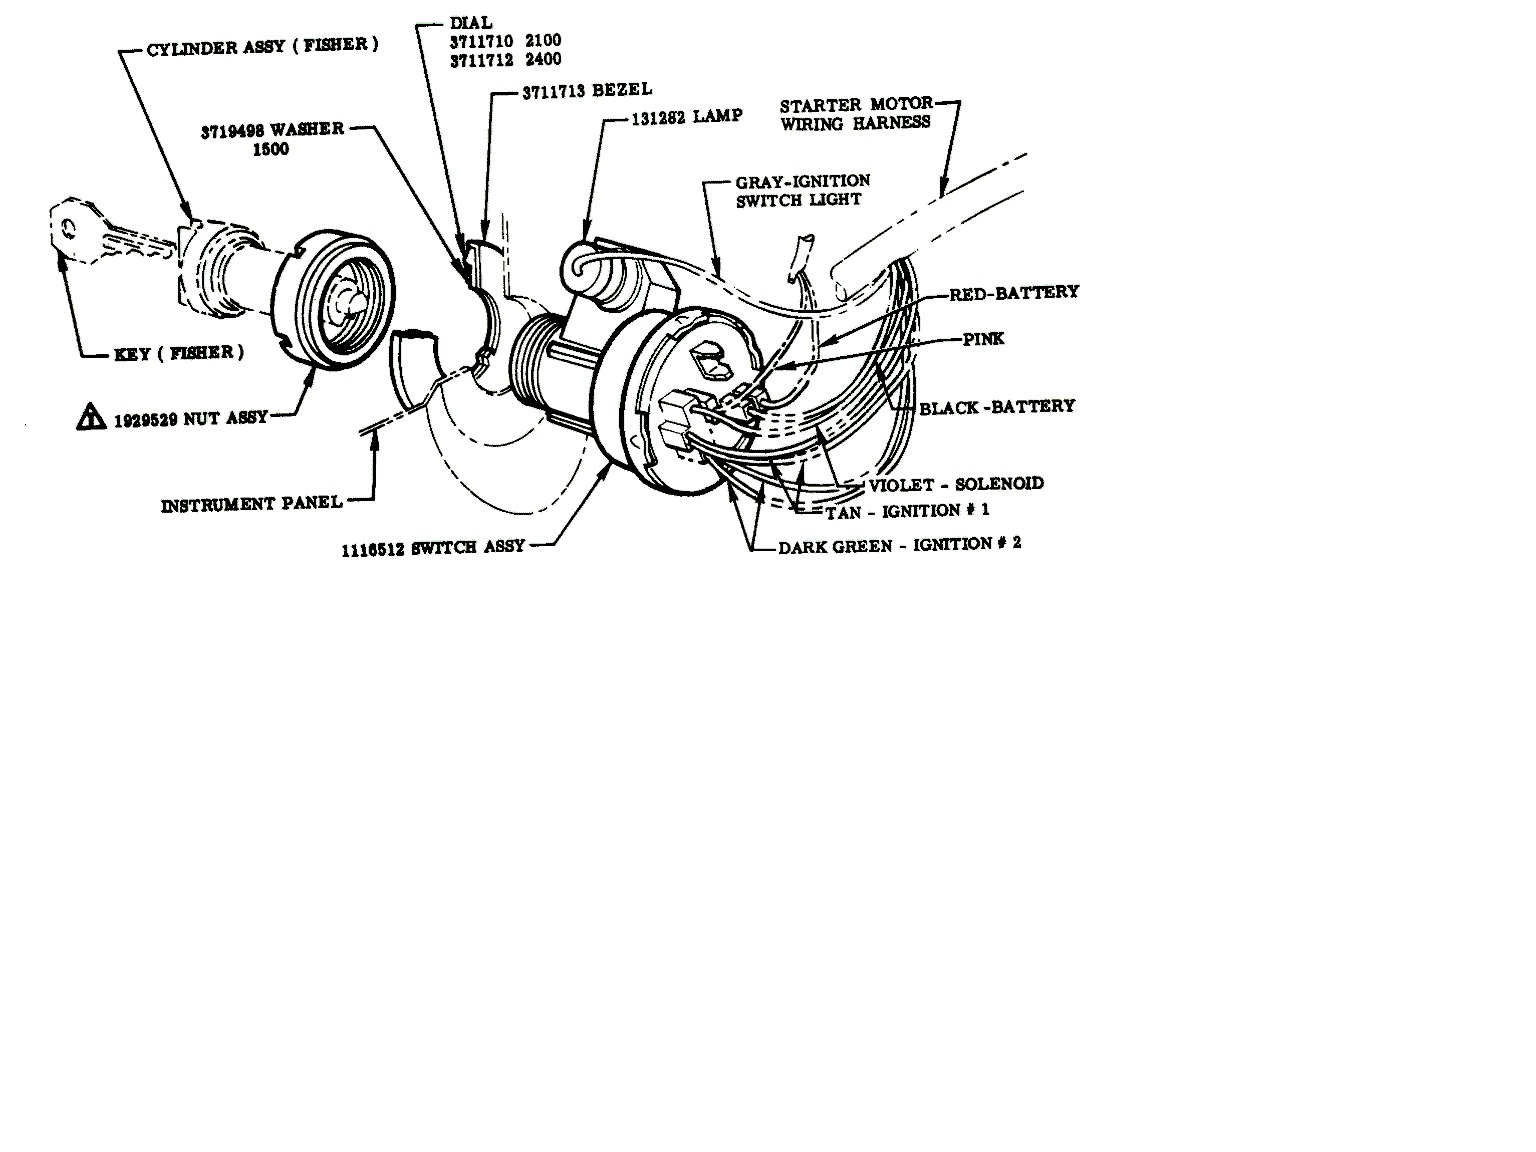 Chevy Ignition Switch Wiring Diagram from jalopyjournal.com